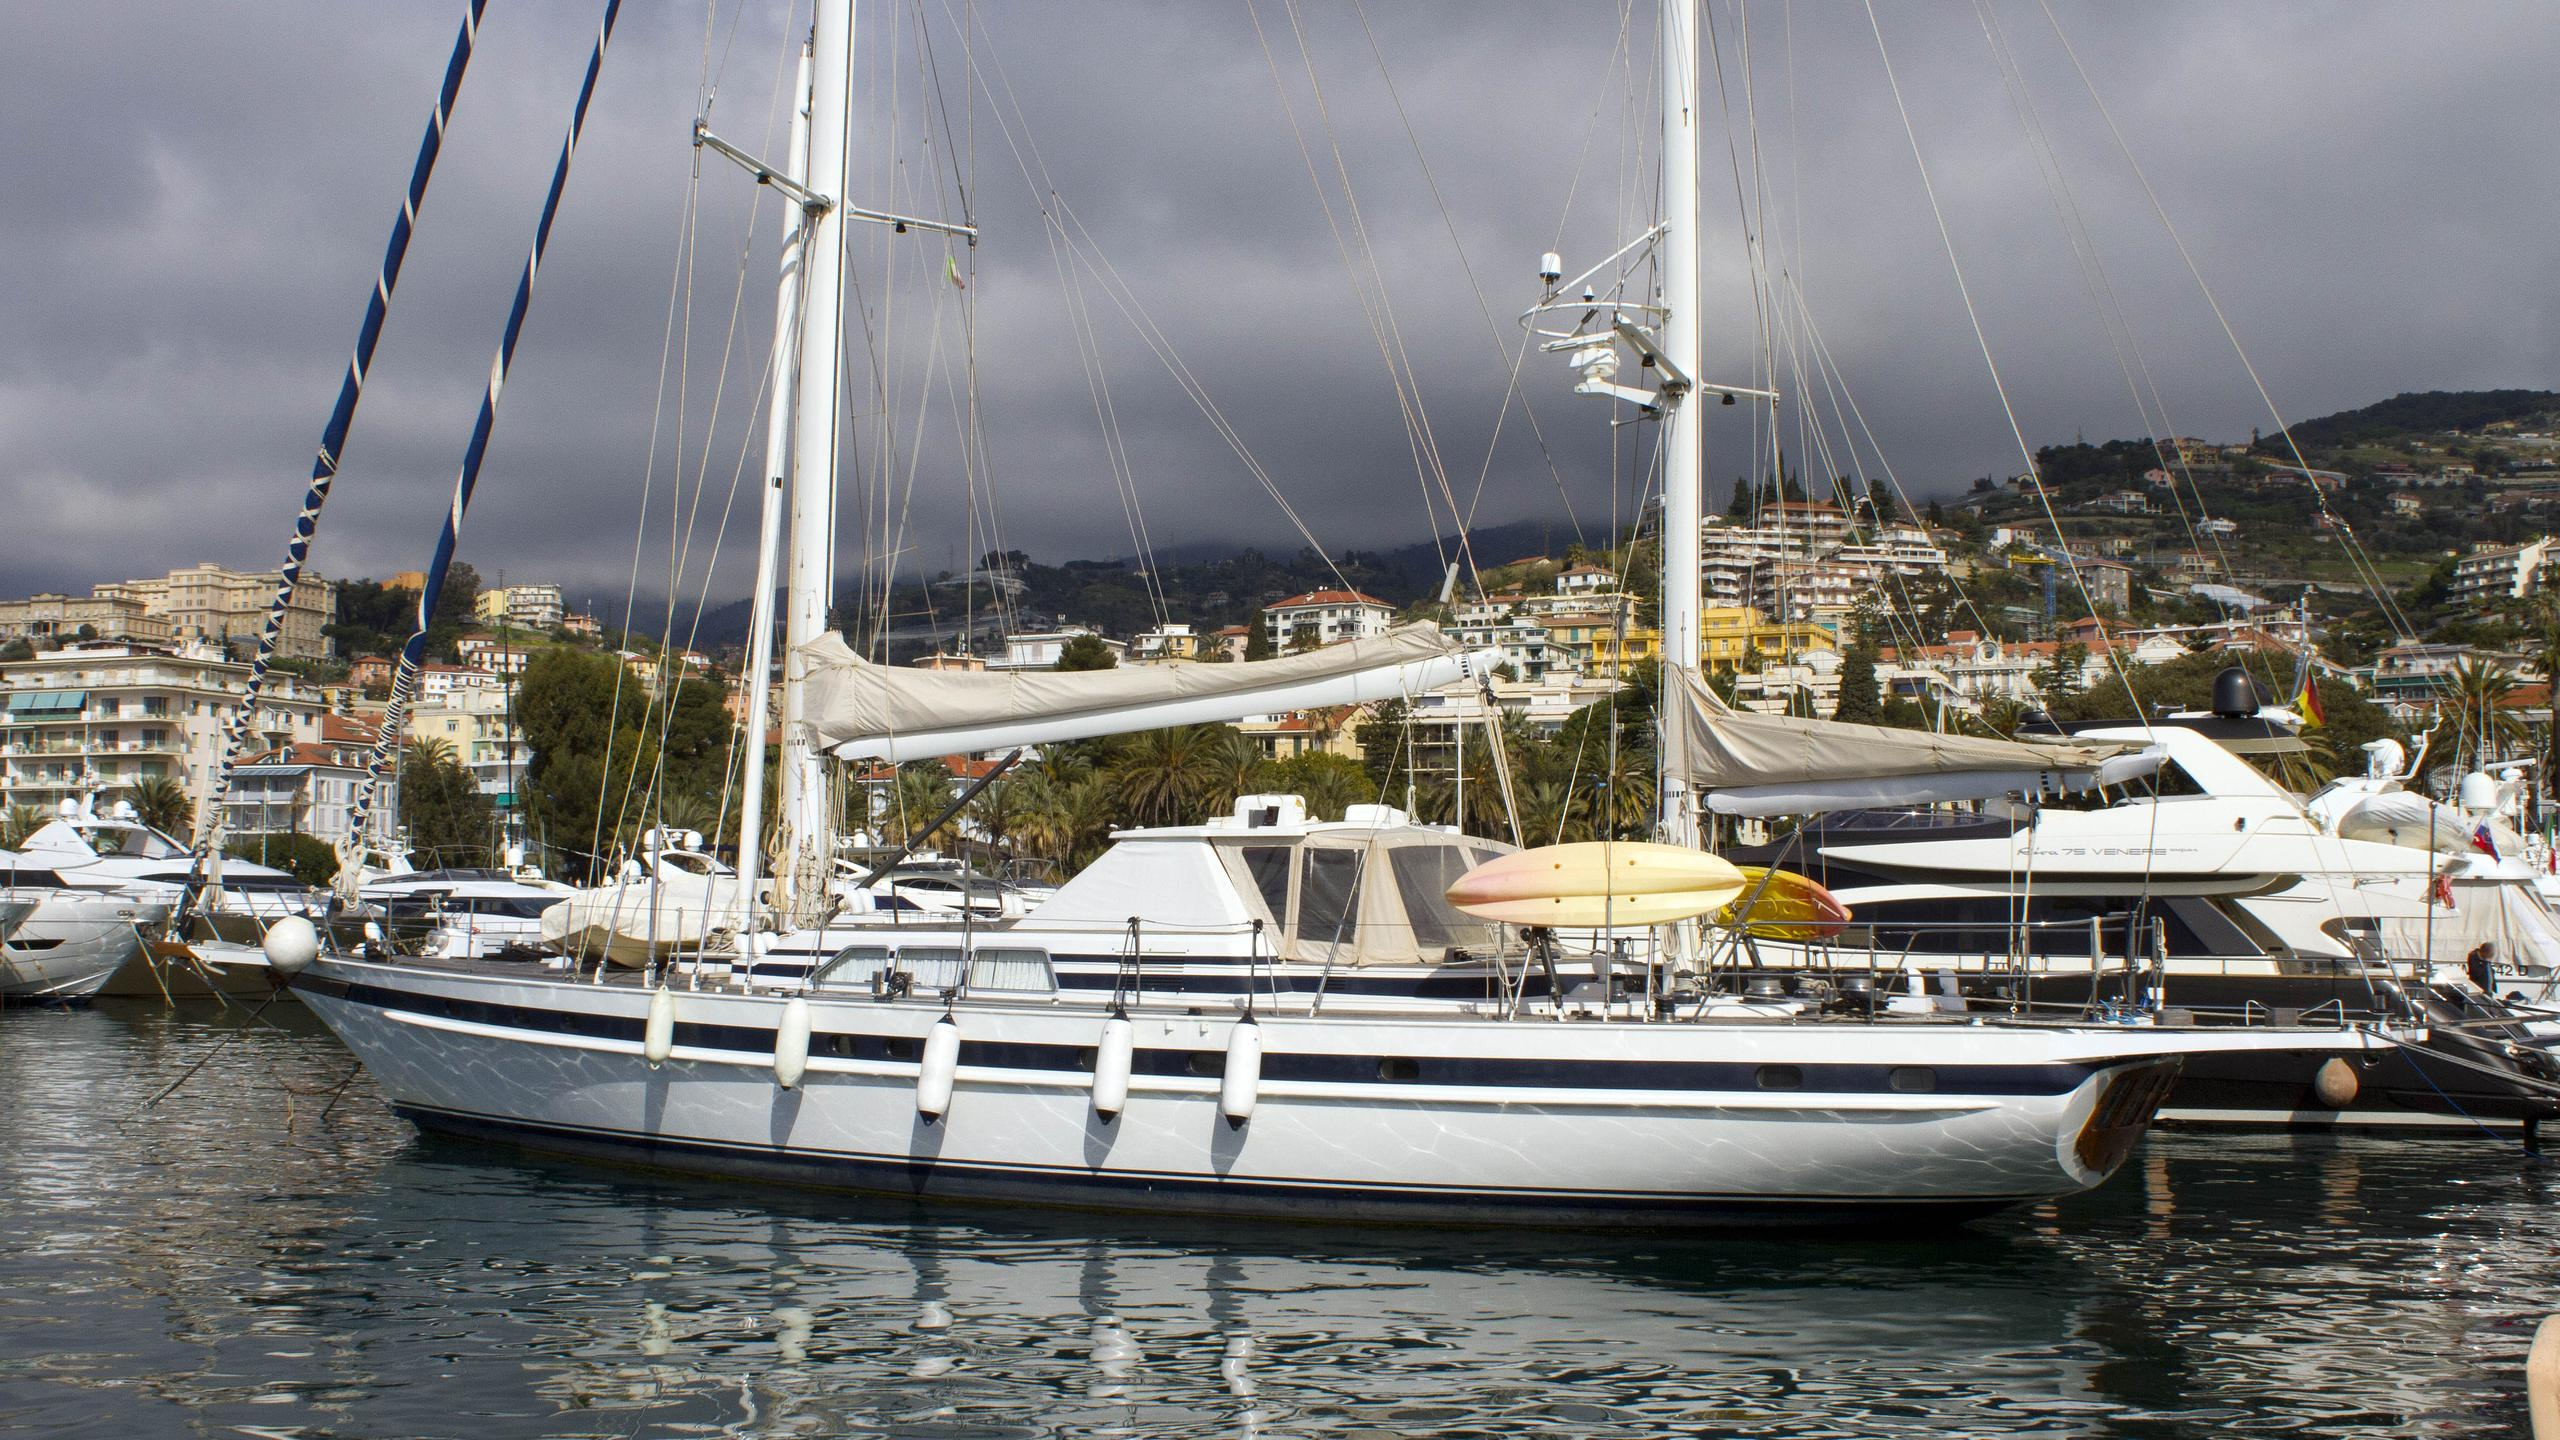 colombaio-sailing-yacht-jongert-25ds-1992-29m-moored